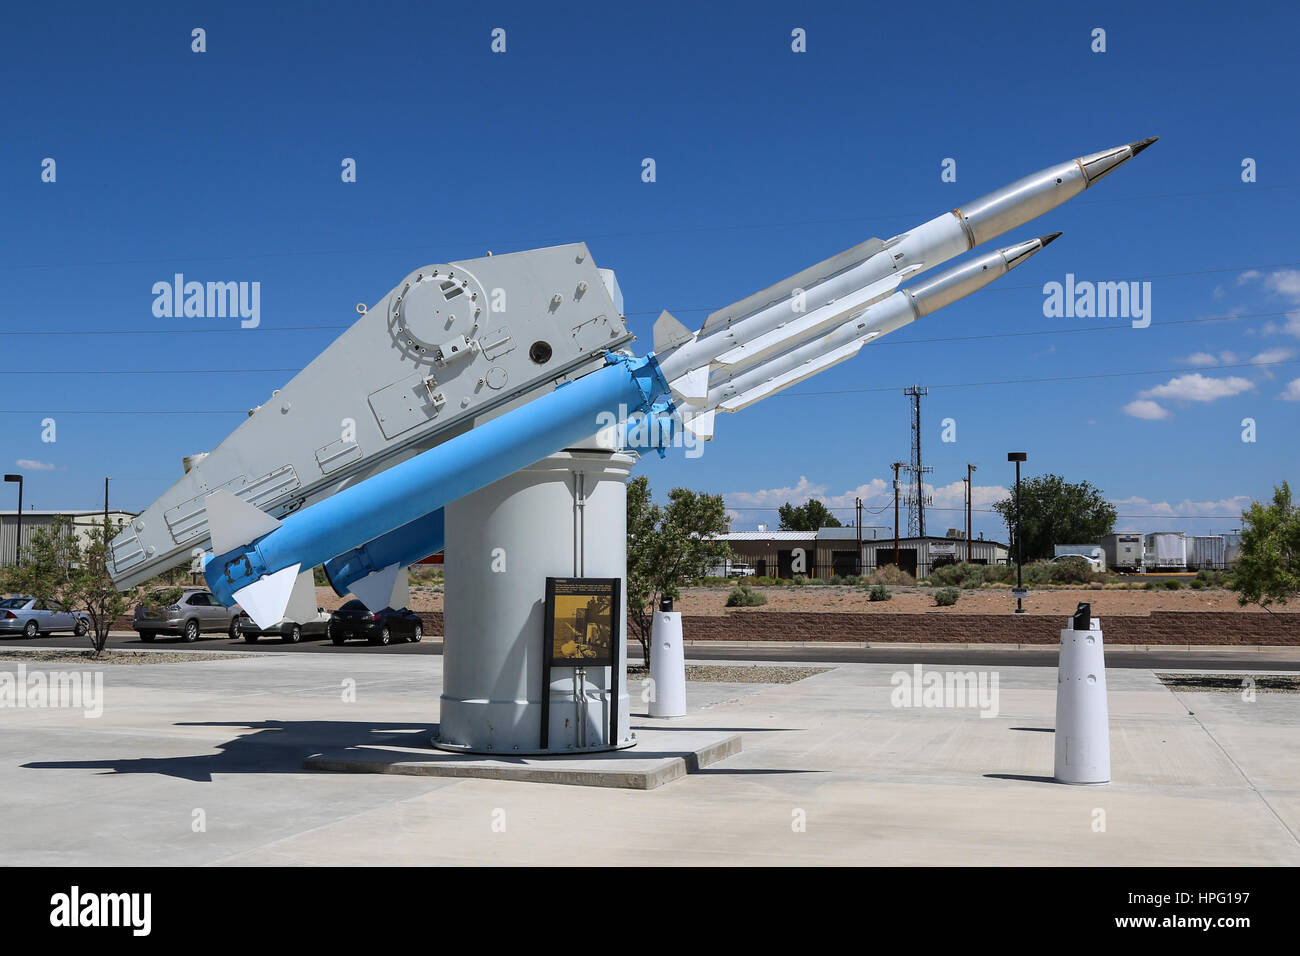 Inert-Tipped, Naval, Terrier Missiles on launcher at the National Museum of Nuclear Science & History - Stock Image